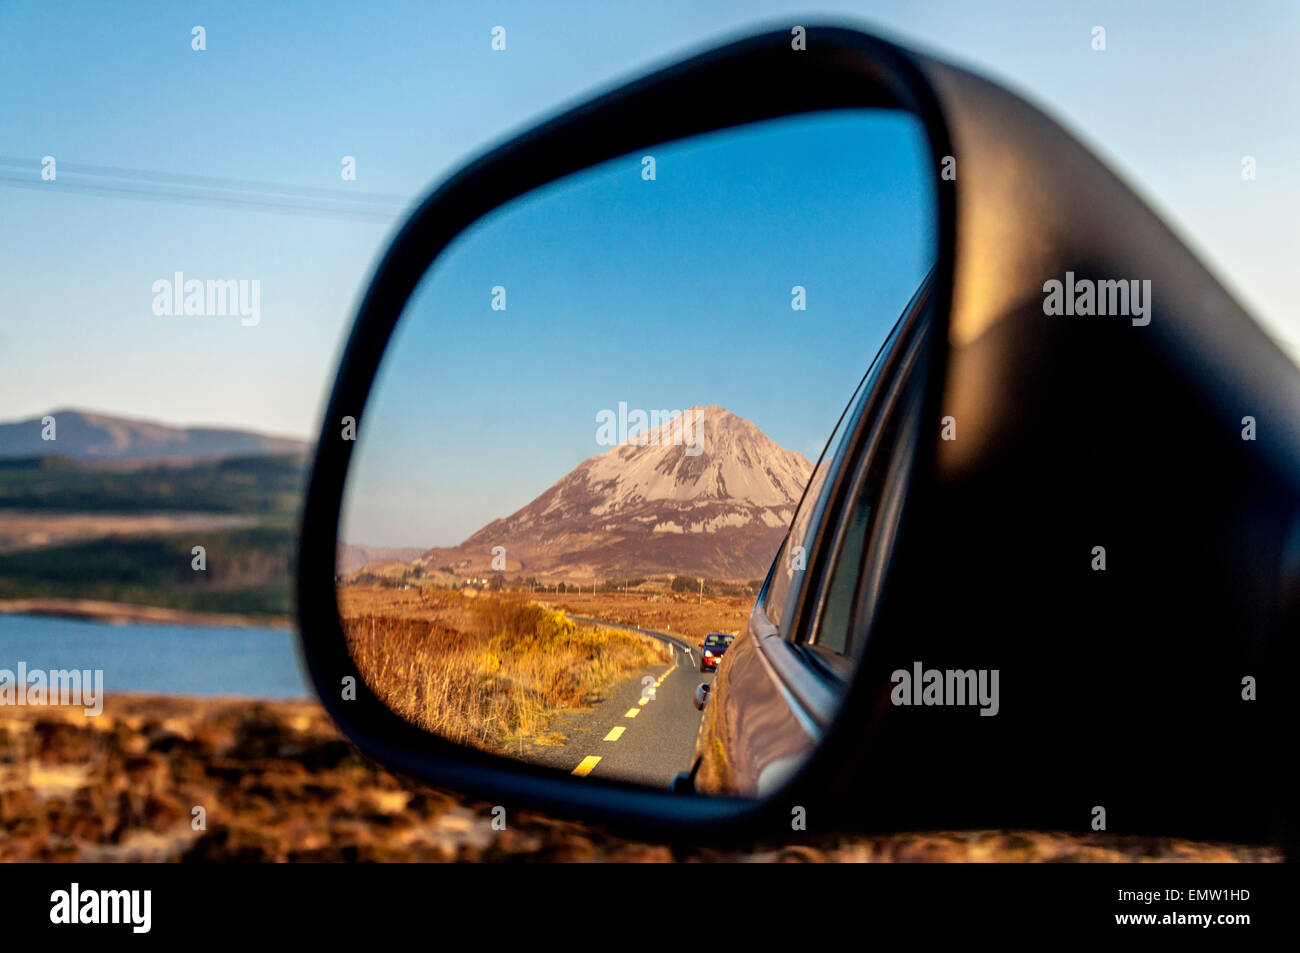 Mount Errigal, reflected in car wing mirror, An Earagail,  a 751-metre (2,464 ft) mountain near Gweedore in County - Stock Image